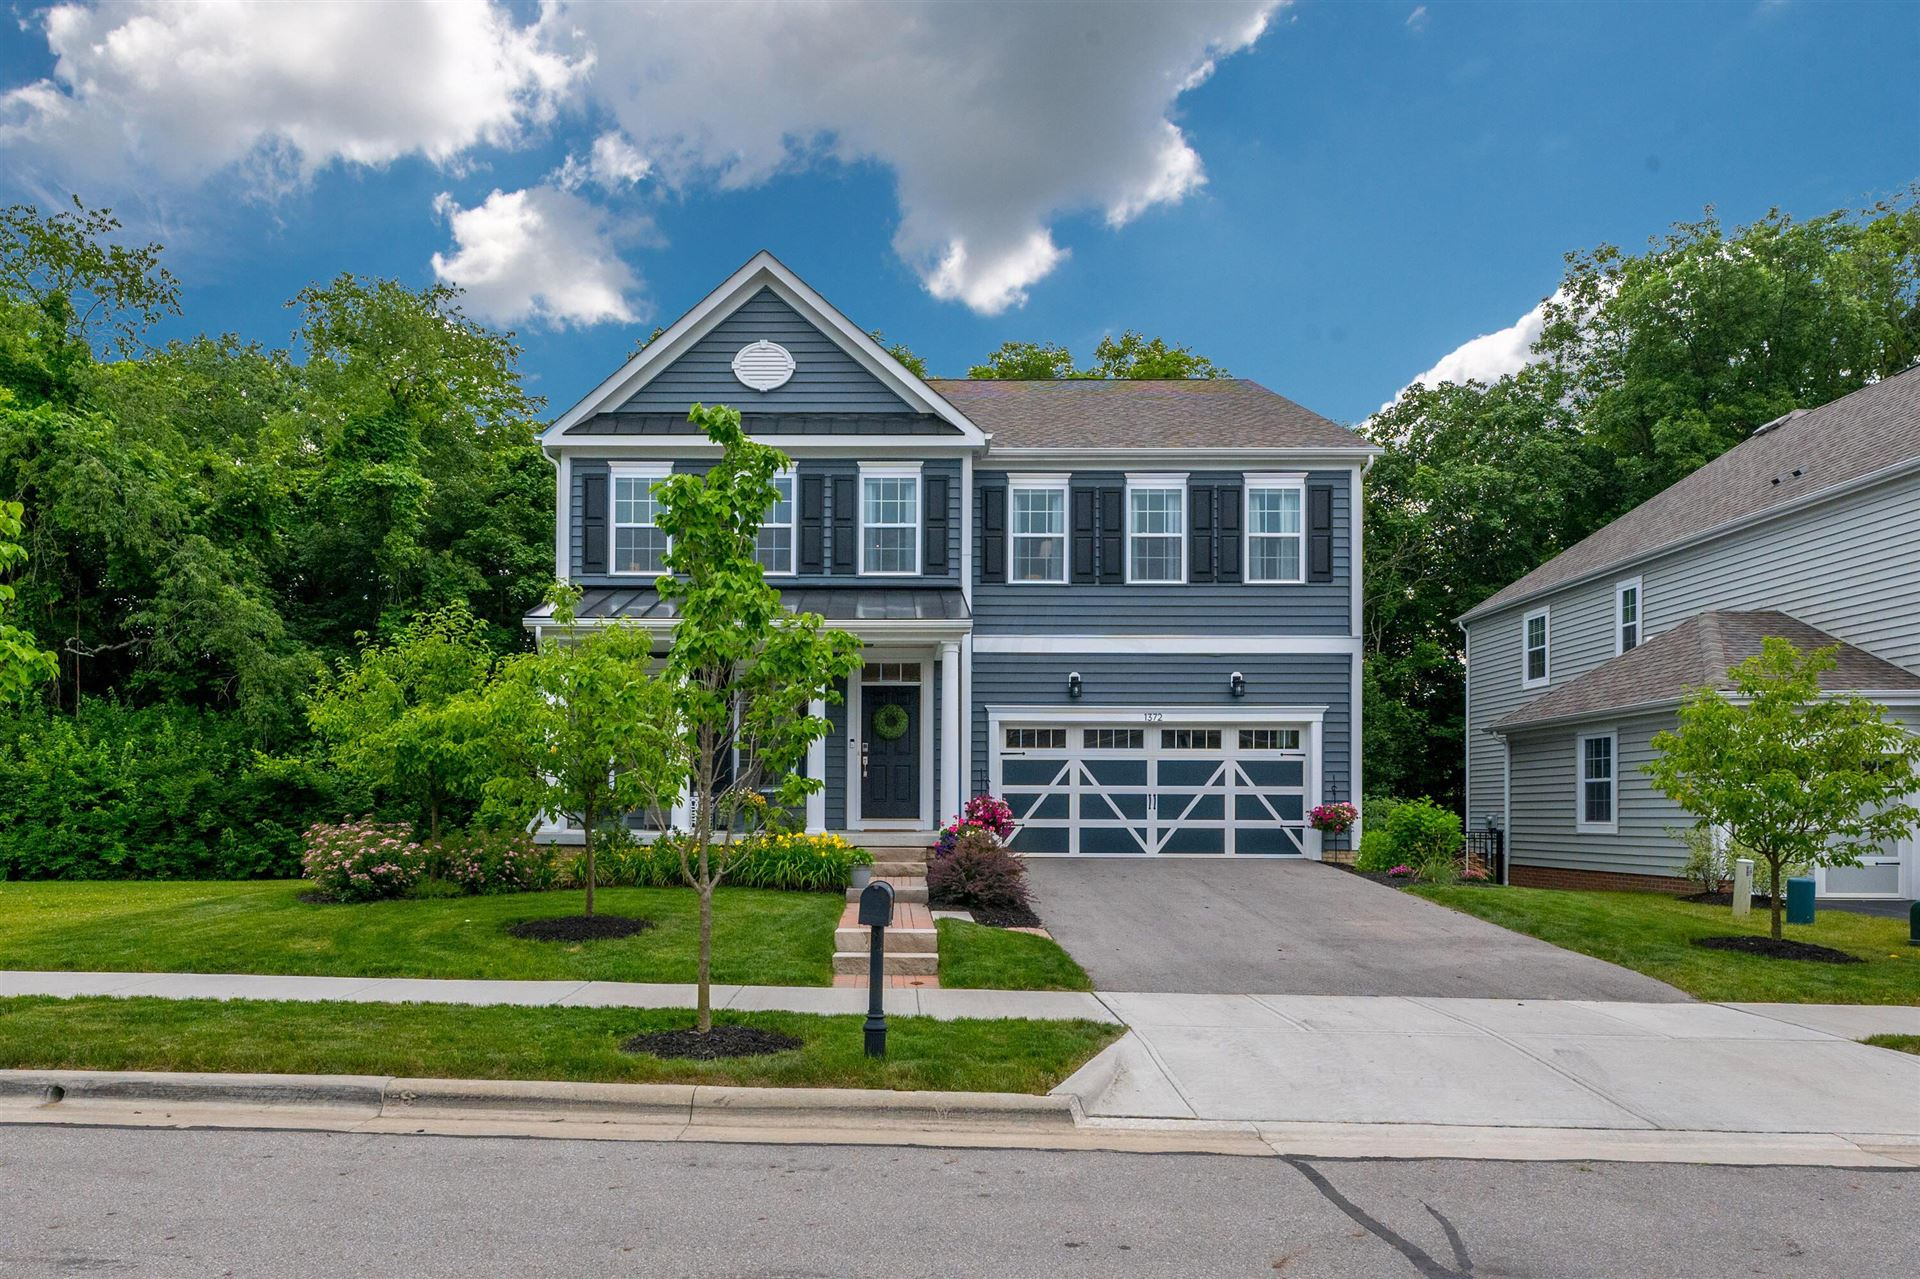 Photo of 1372 Spagnol Lane, Westerville, OH 43081 (MLS # 221021902)